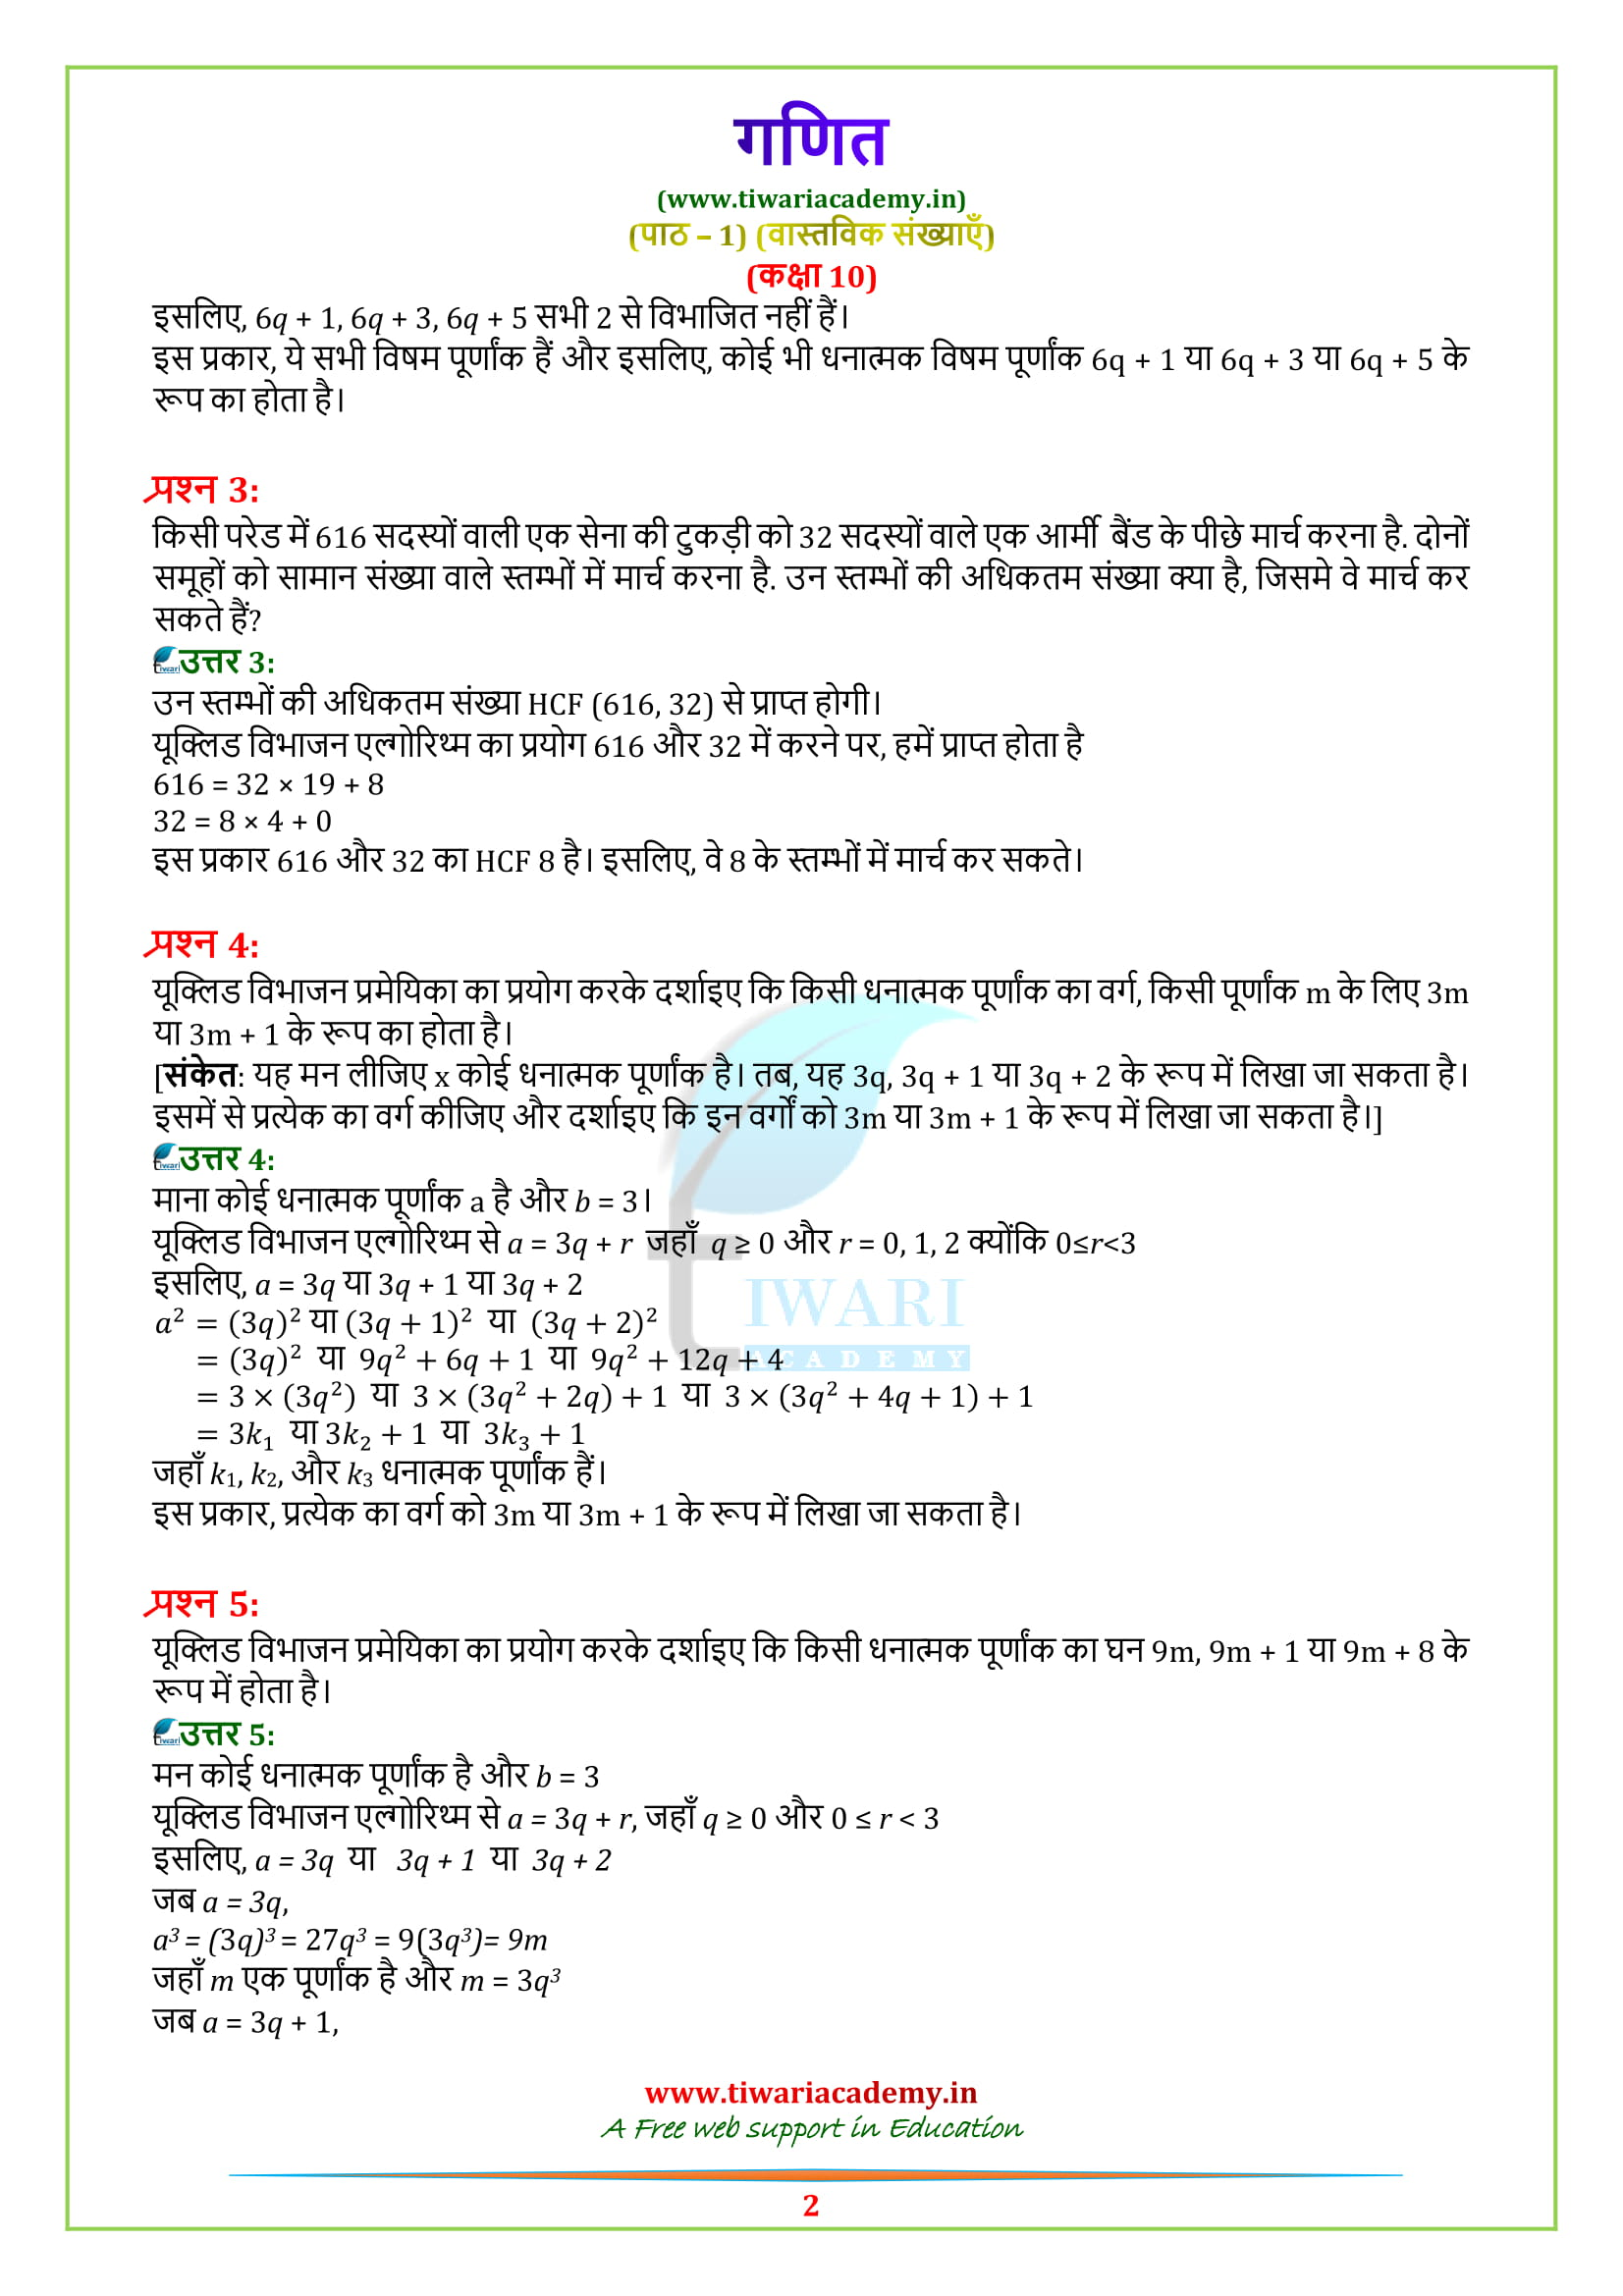 Class 10 Maths Chapter 1 Exercise 1.1 solutions in Hindi question 1, 2, 3